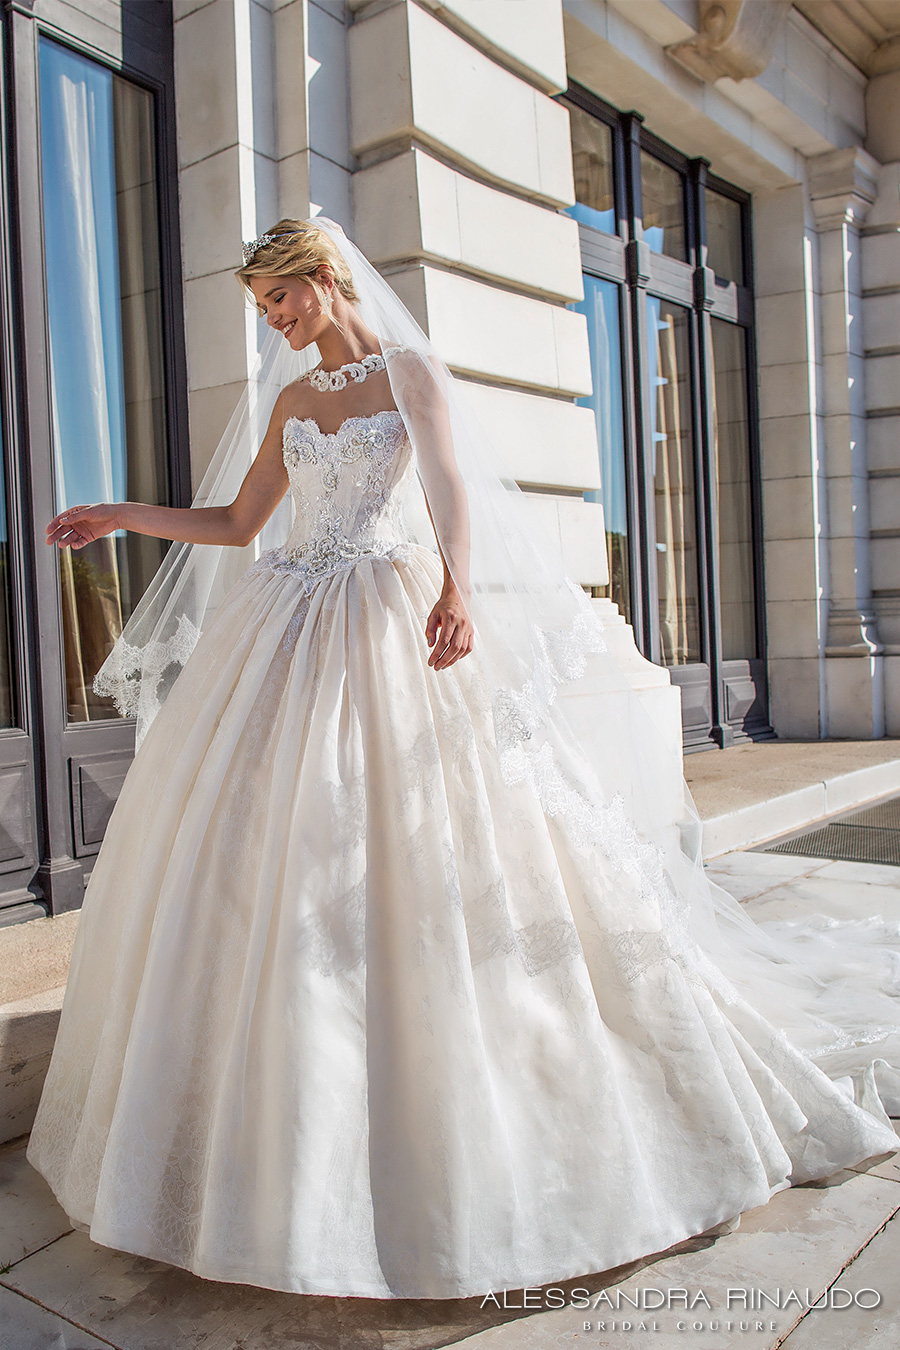 alessandra rinaudo 2017 bridal strapless sweetheart neckline bustier heavily embellished bodice princess ball gown wedding dress racer back royal long train (bellamy) mv